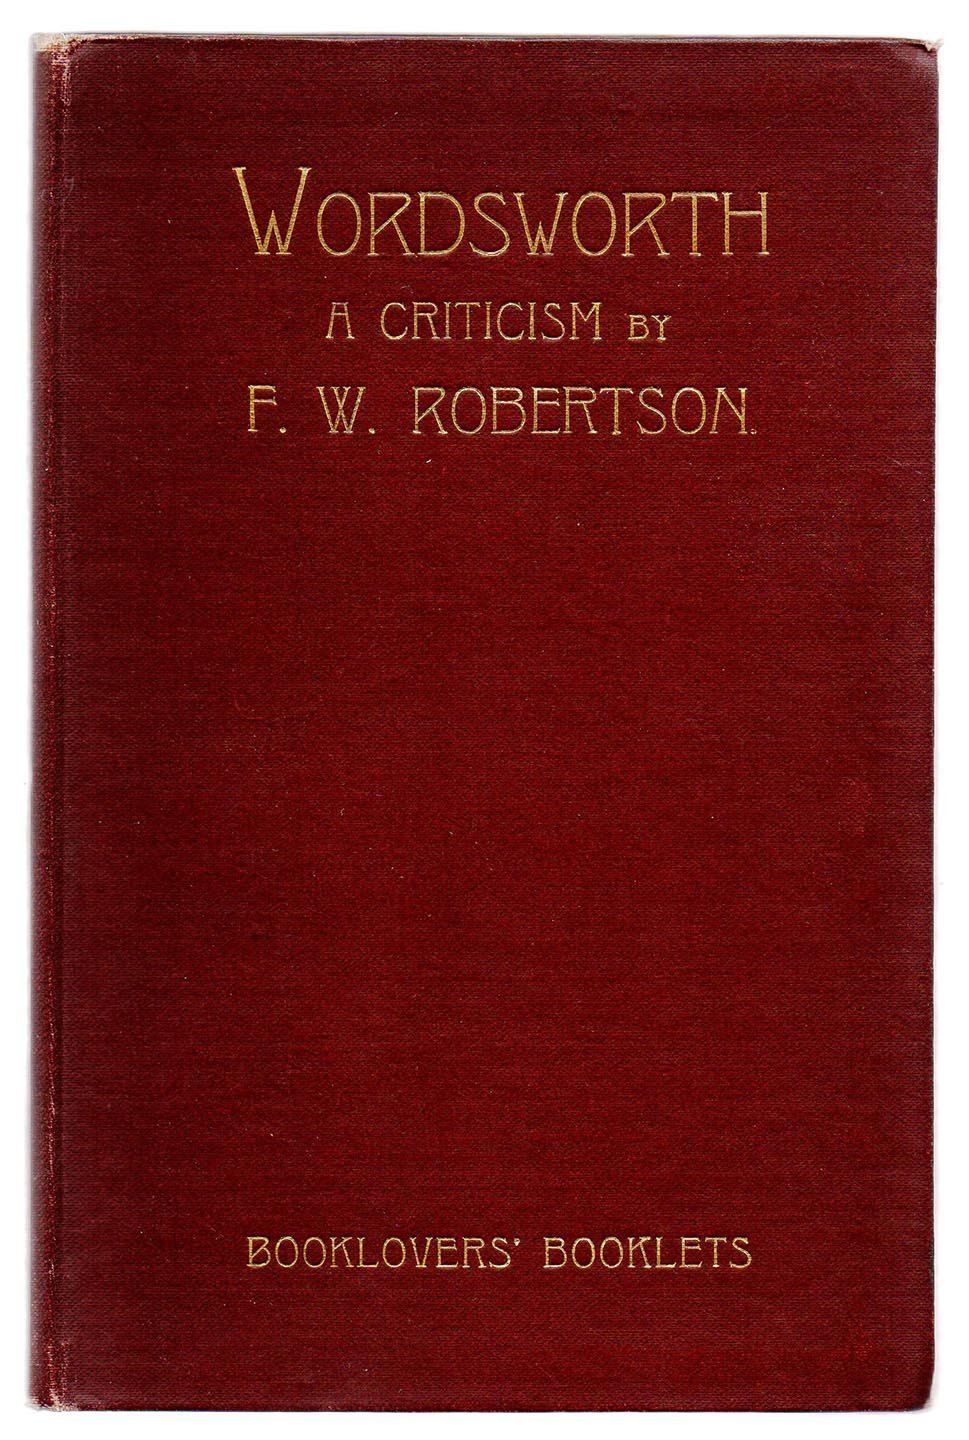 Wordsworth: A Criticism